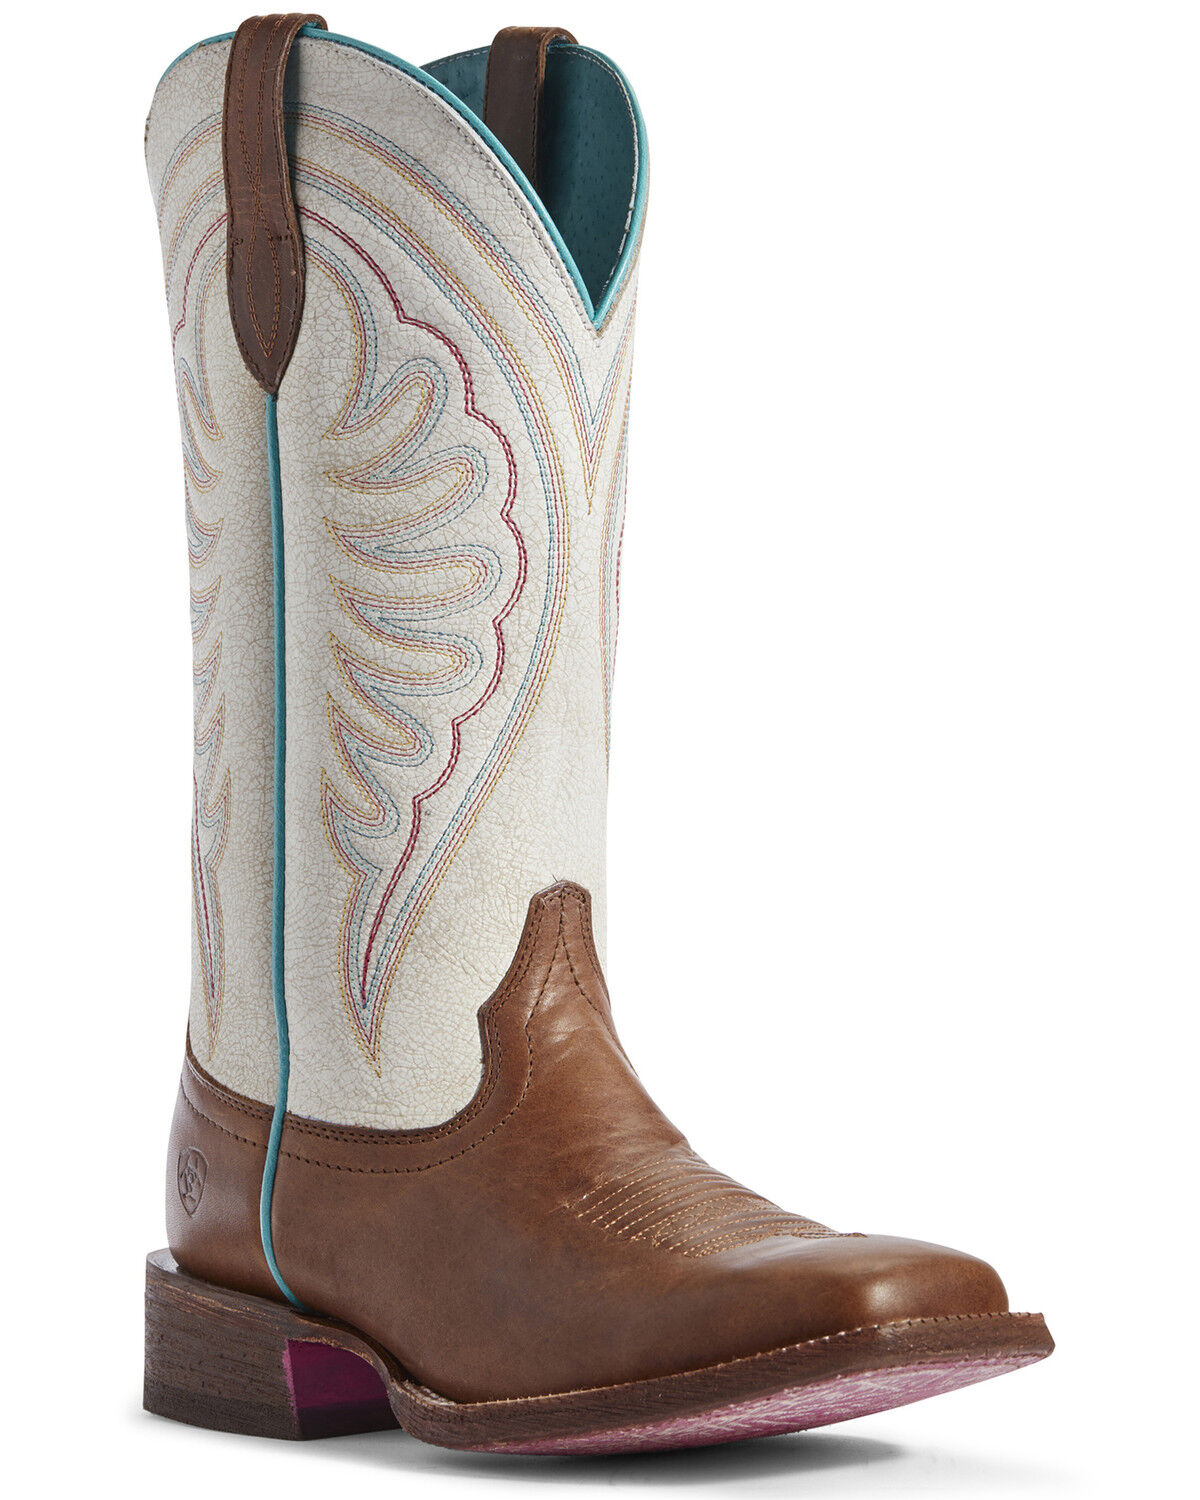 Ariat Women's Shiloh Red Western Boots